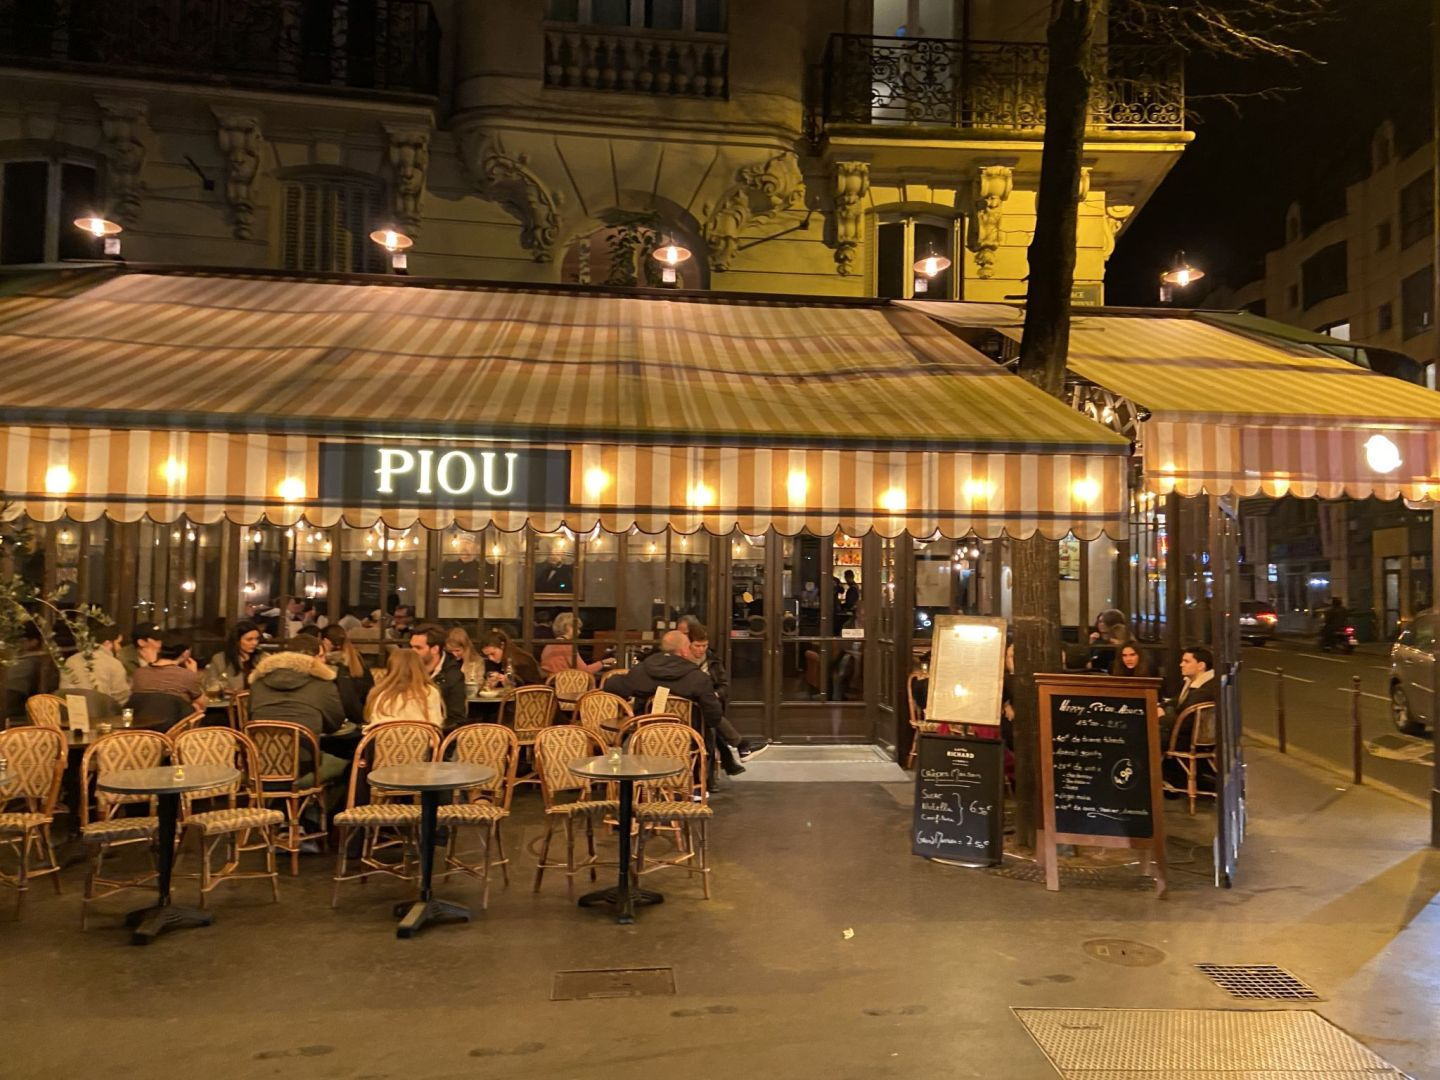 Le Piou – It's better to go to Picard